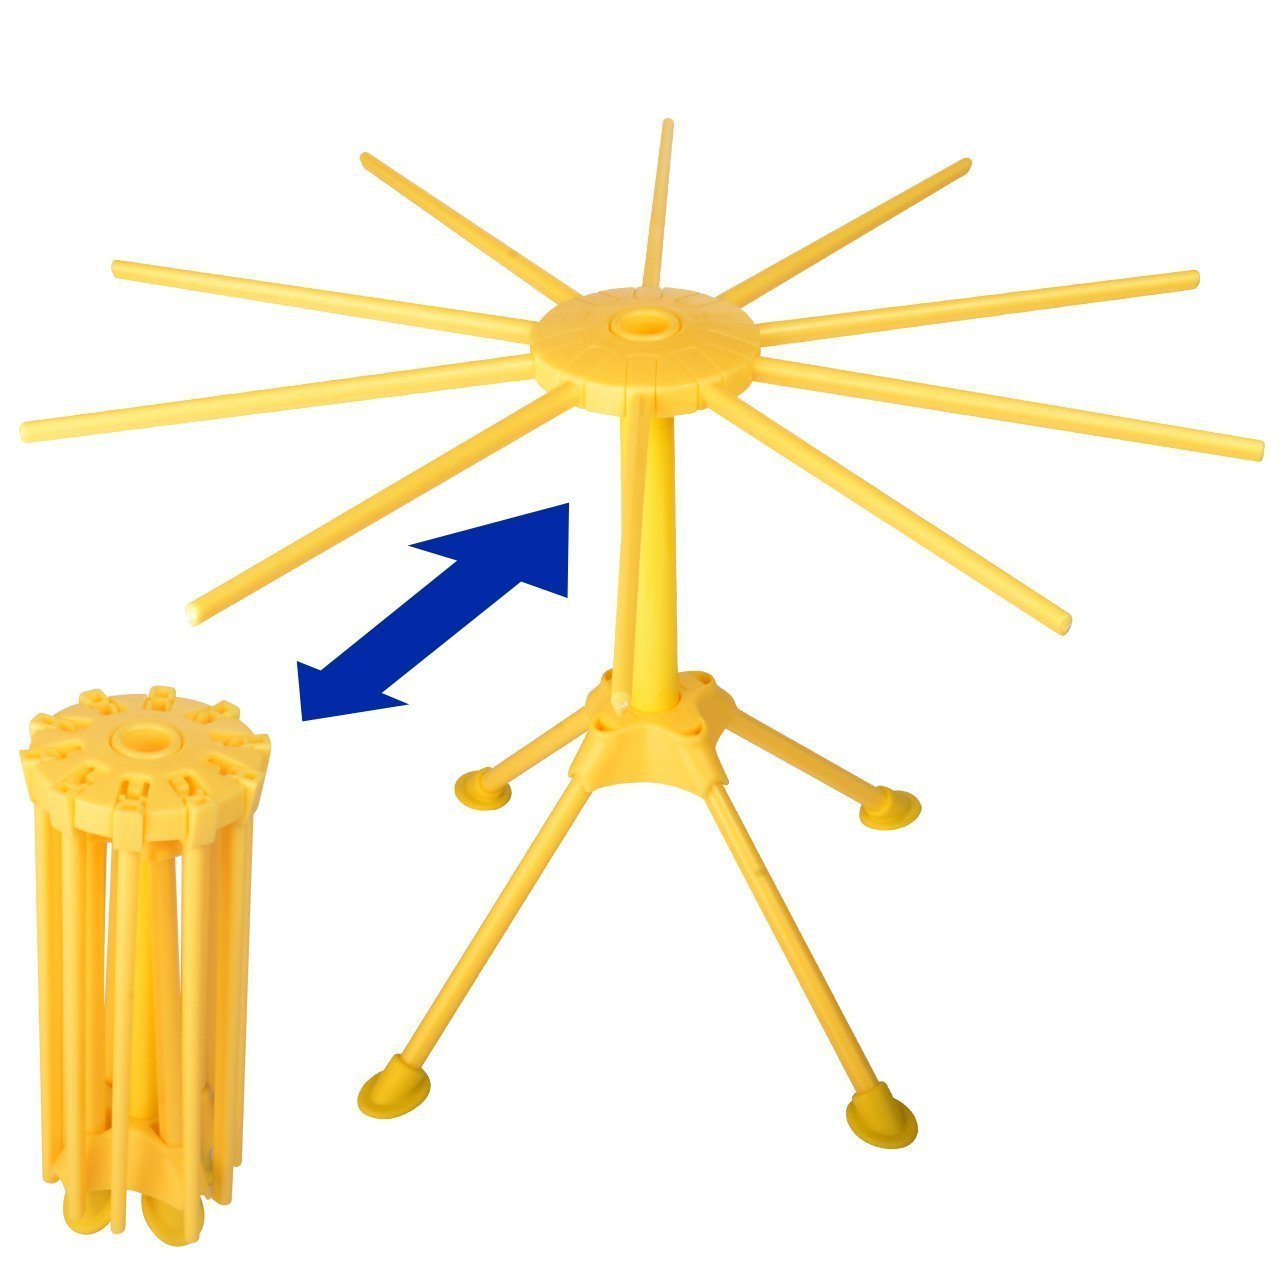 Homer Collapsible Pasta Drying Rack and Spaghetti Pasta Maker with 10 Arms Safe-Food Grade ABS Plastic Matrial Noodles Dryer Stand Holder (Yellow)